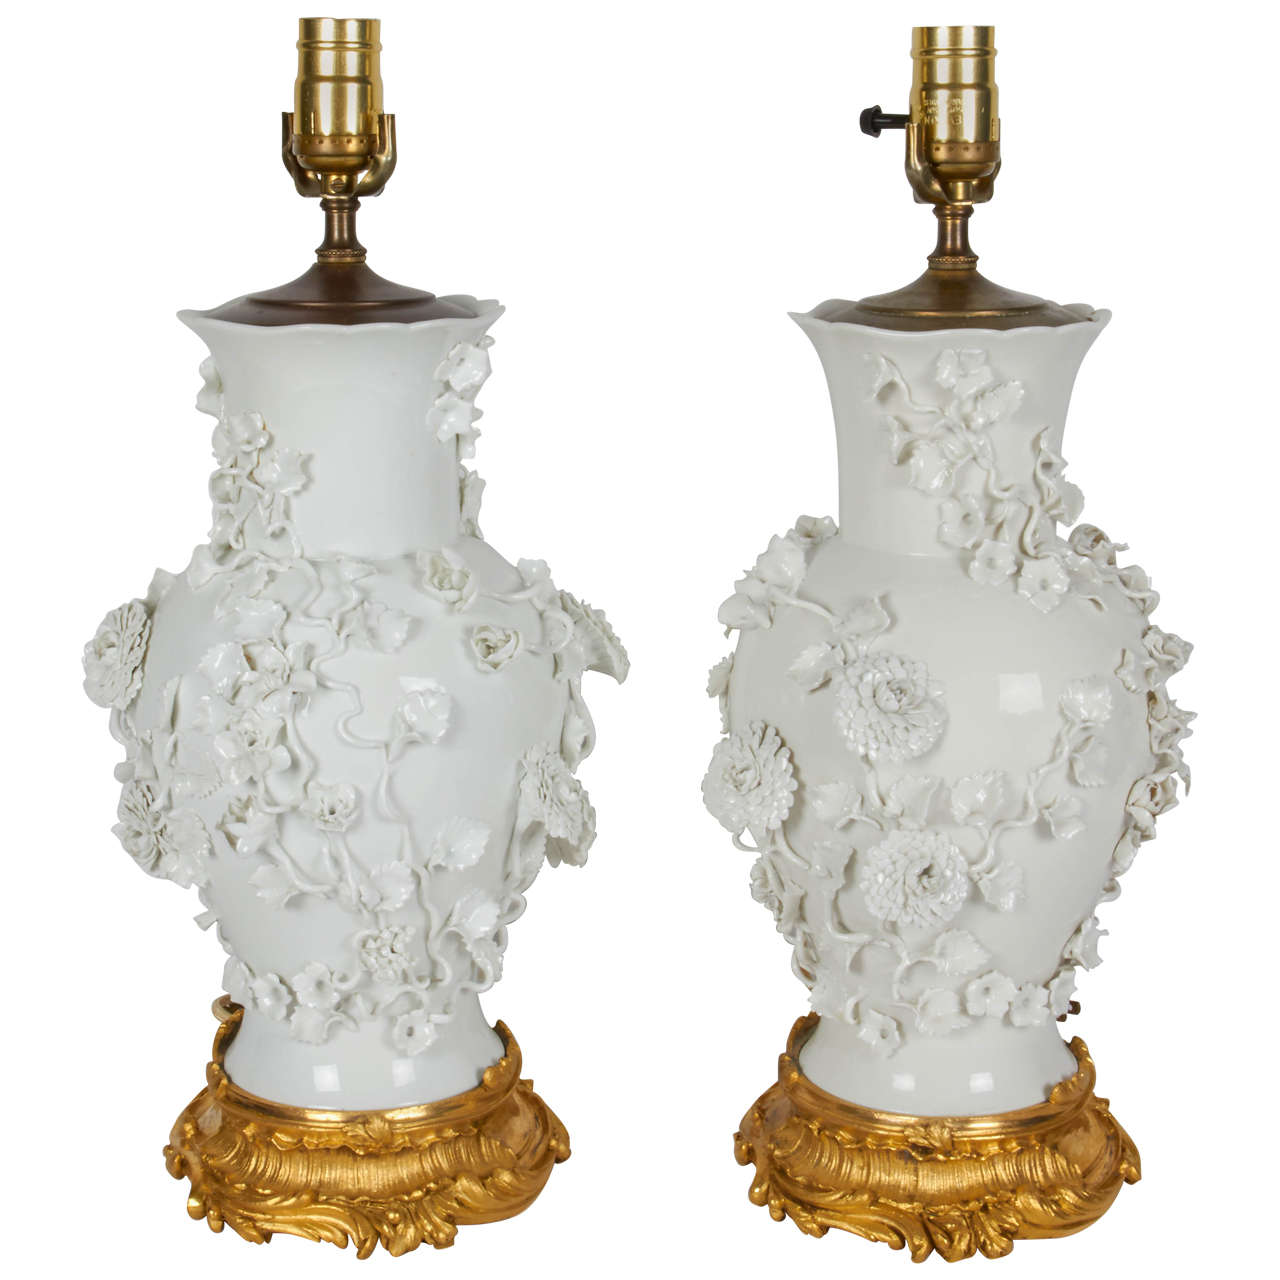 Pair of antique blanc de chine porcelain lamps with raised flowers pair of antique blanc de chine porcelain lamps with raised flowers for sale mightylinksfo